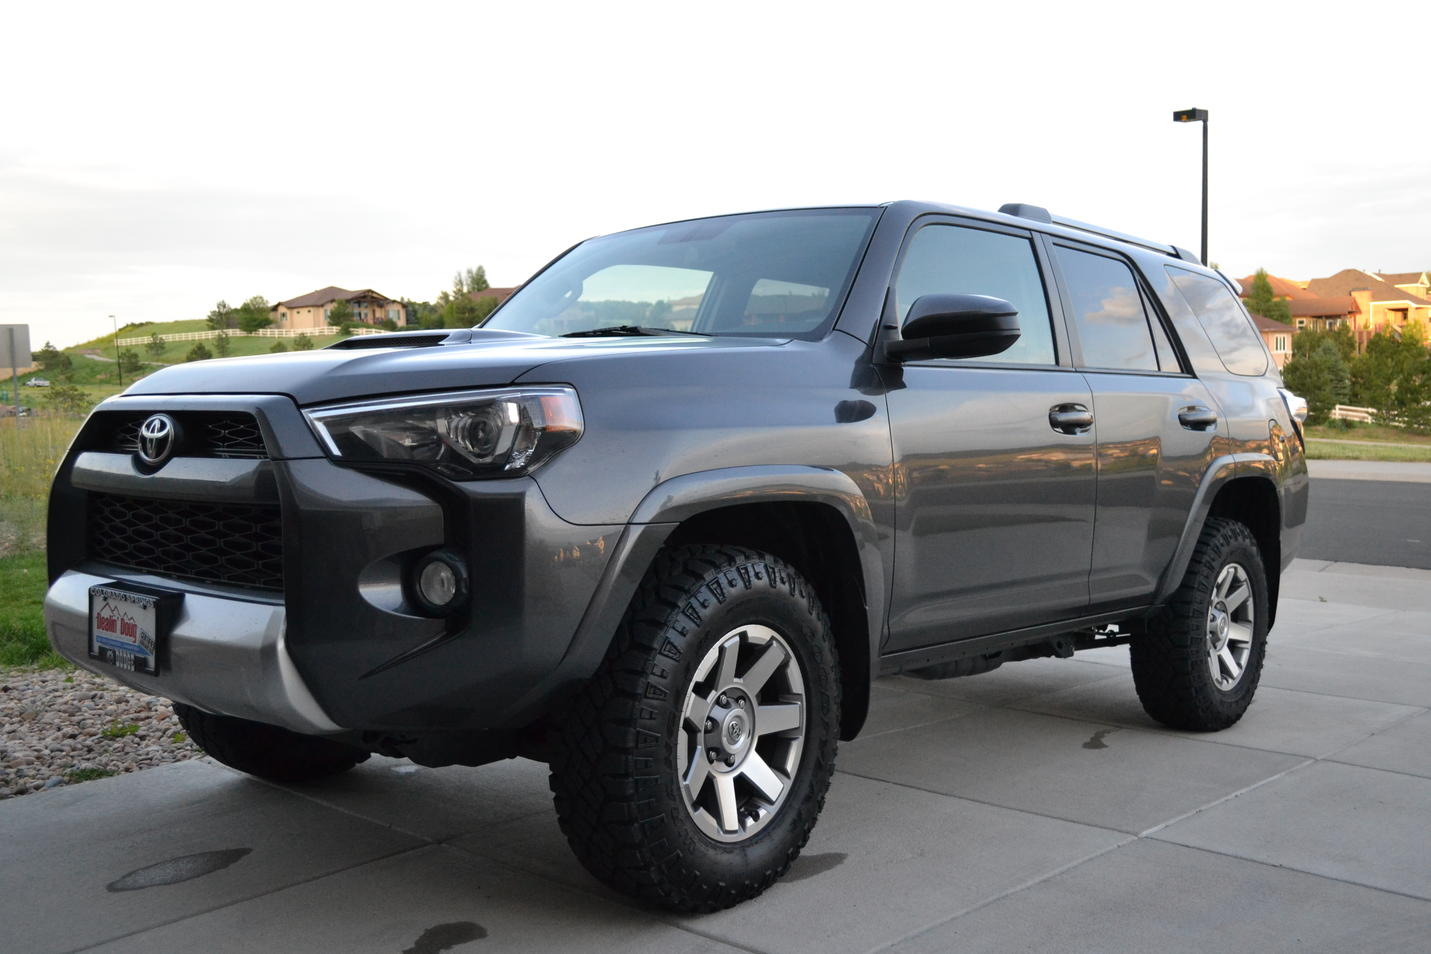 2017 Toyota 4Runner >> 5th Gen T4R Picture Gallery - Page 276 - Toyota 4Runner Forum - Largest 4Runner Forum